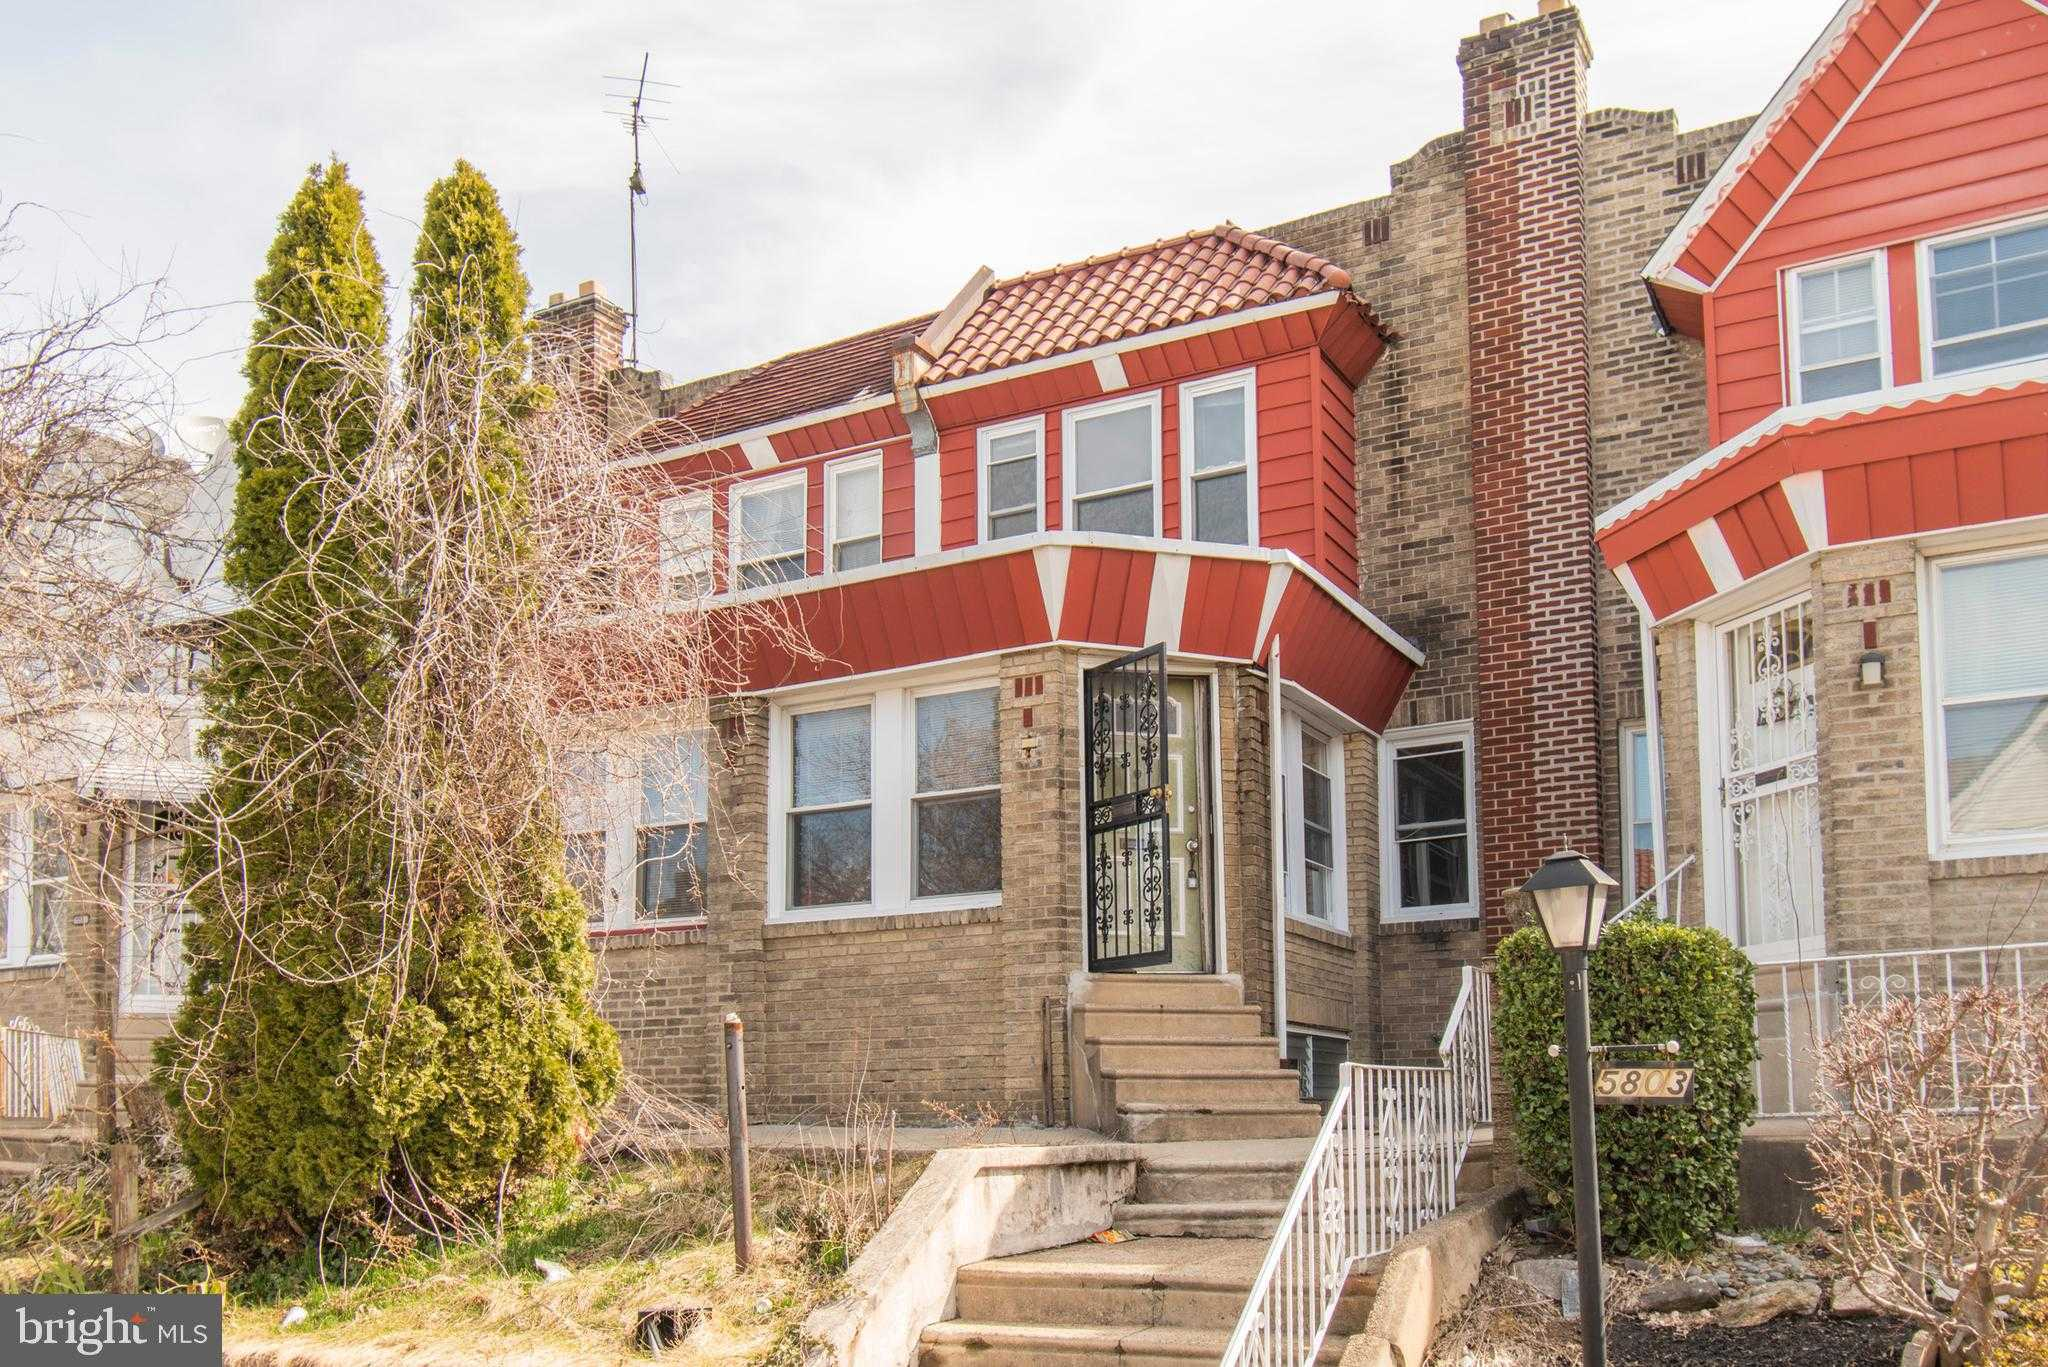 $150,000 - 3Br/1Ba -  for Sale in Fern Rock, Philadelphia